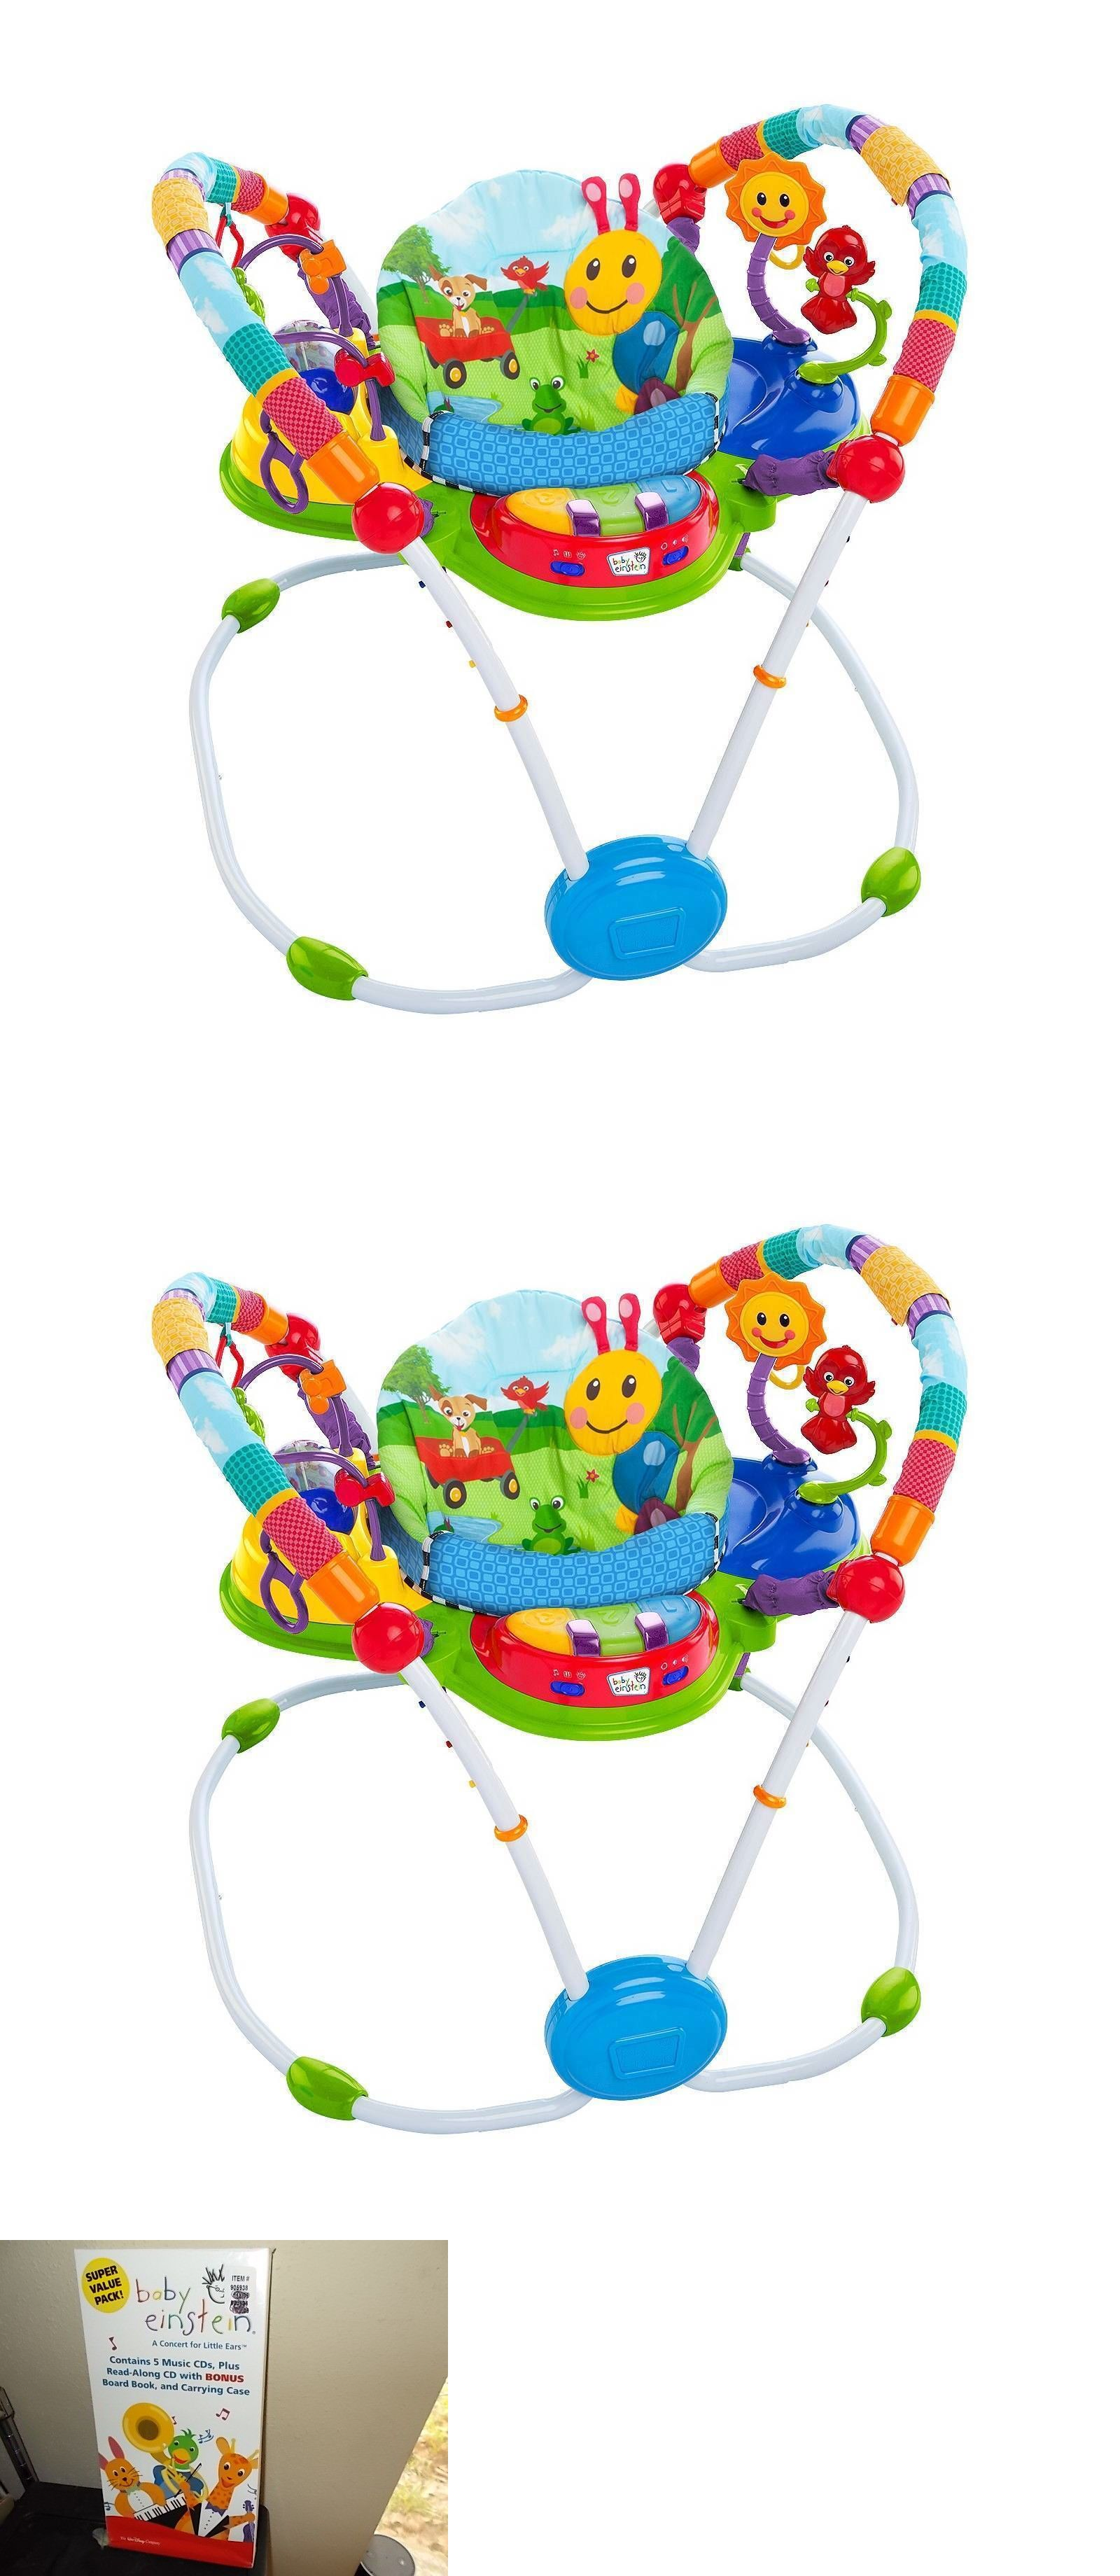 0a6501f01 Baby Jumping Exercisers 117032  Adjustable Baby Activity Center ...